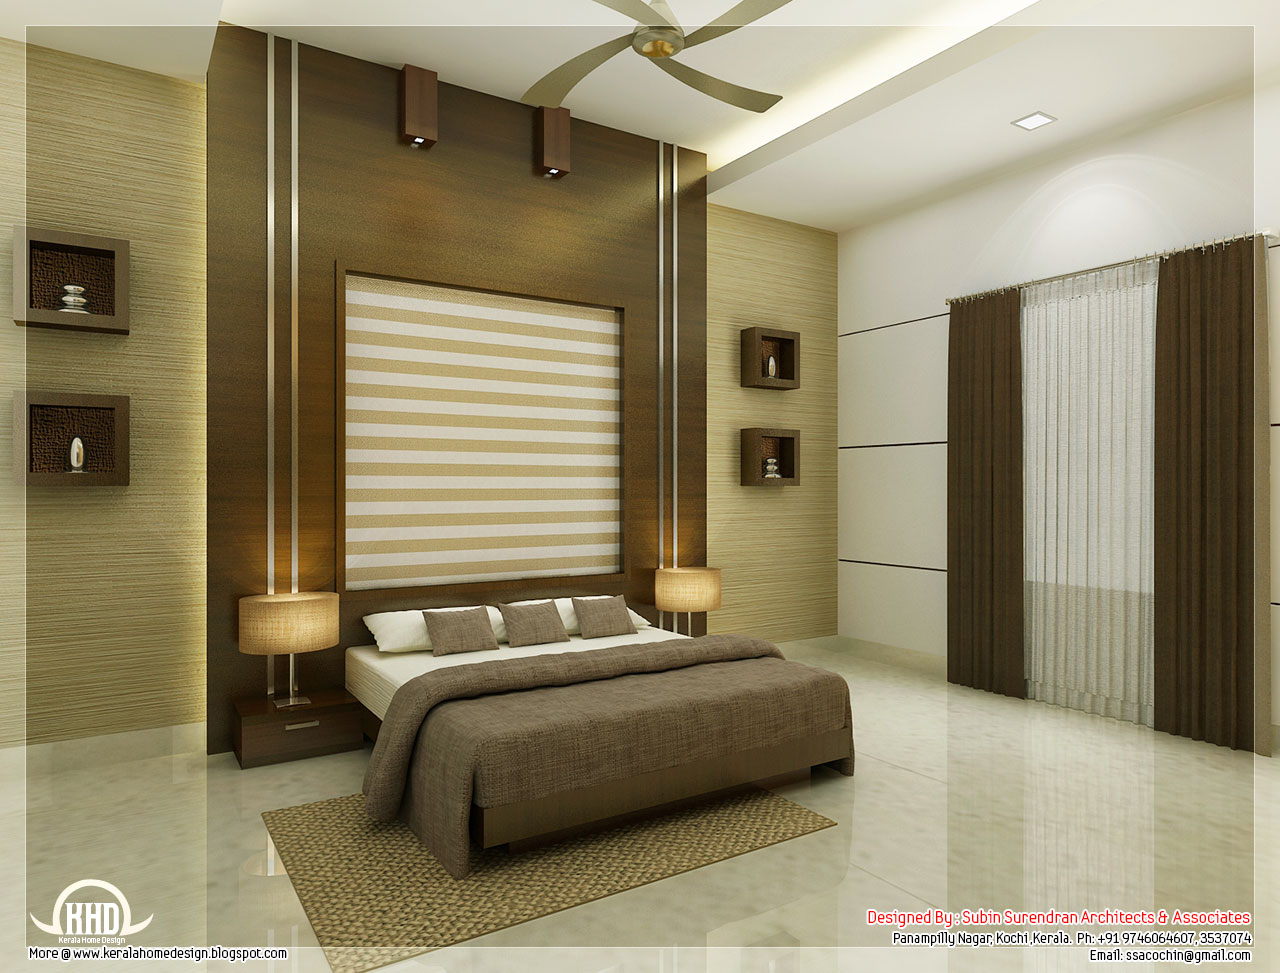 Beautiful bedroom interior designs kerala home design and floor plans Home design ideas pictures remodel and decor